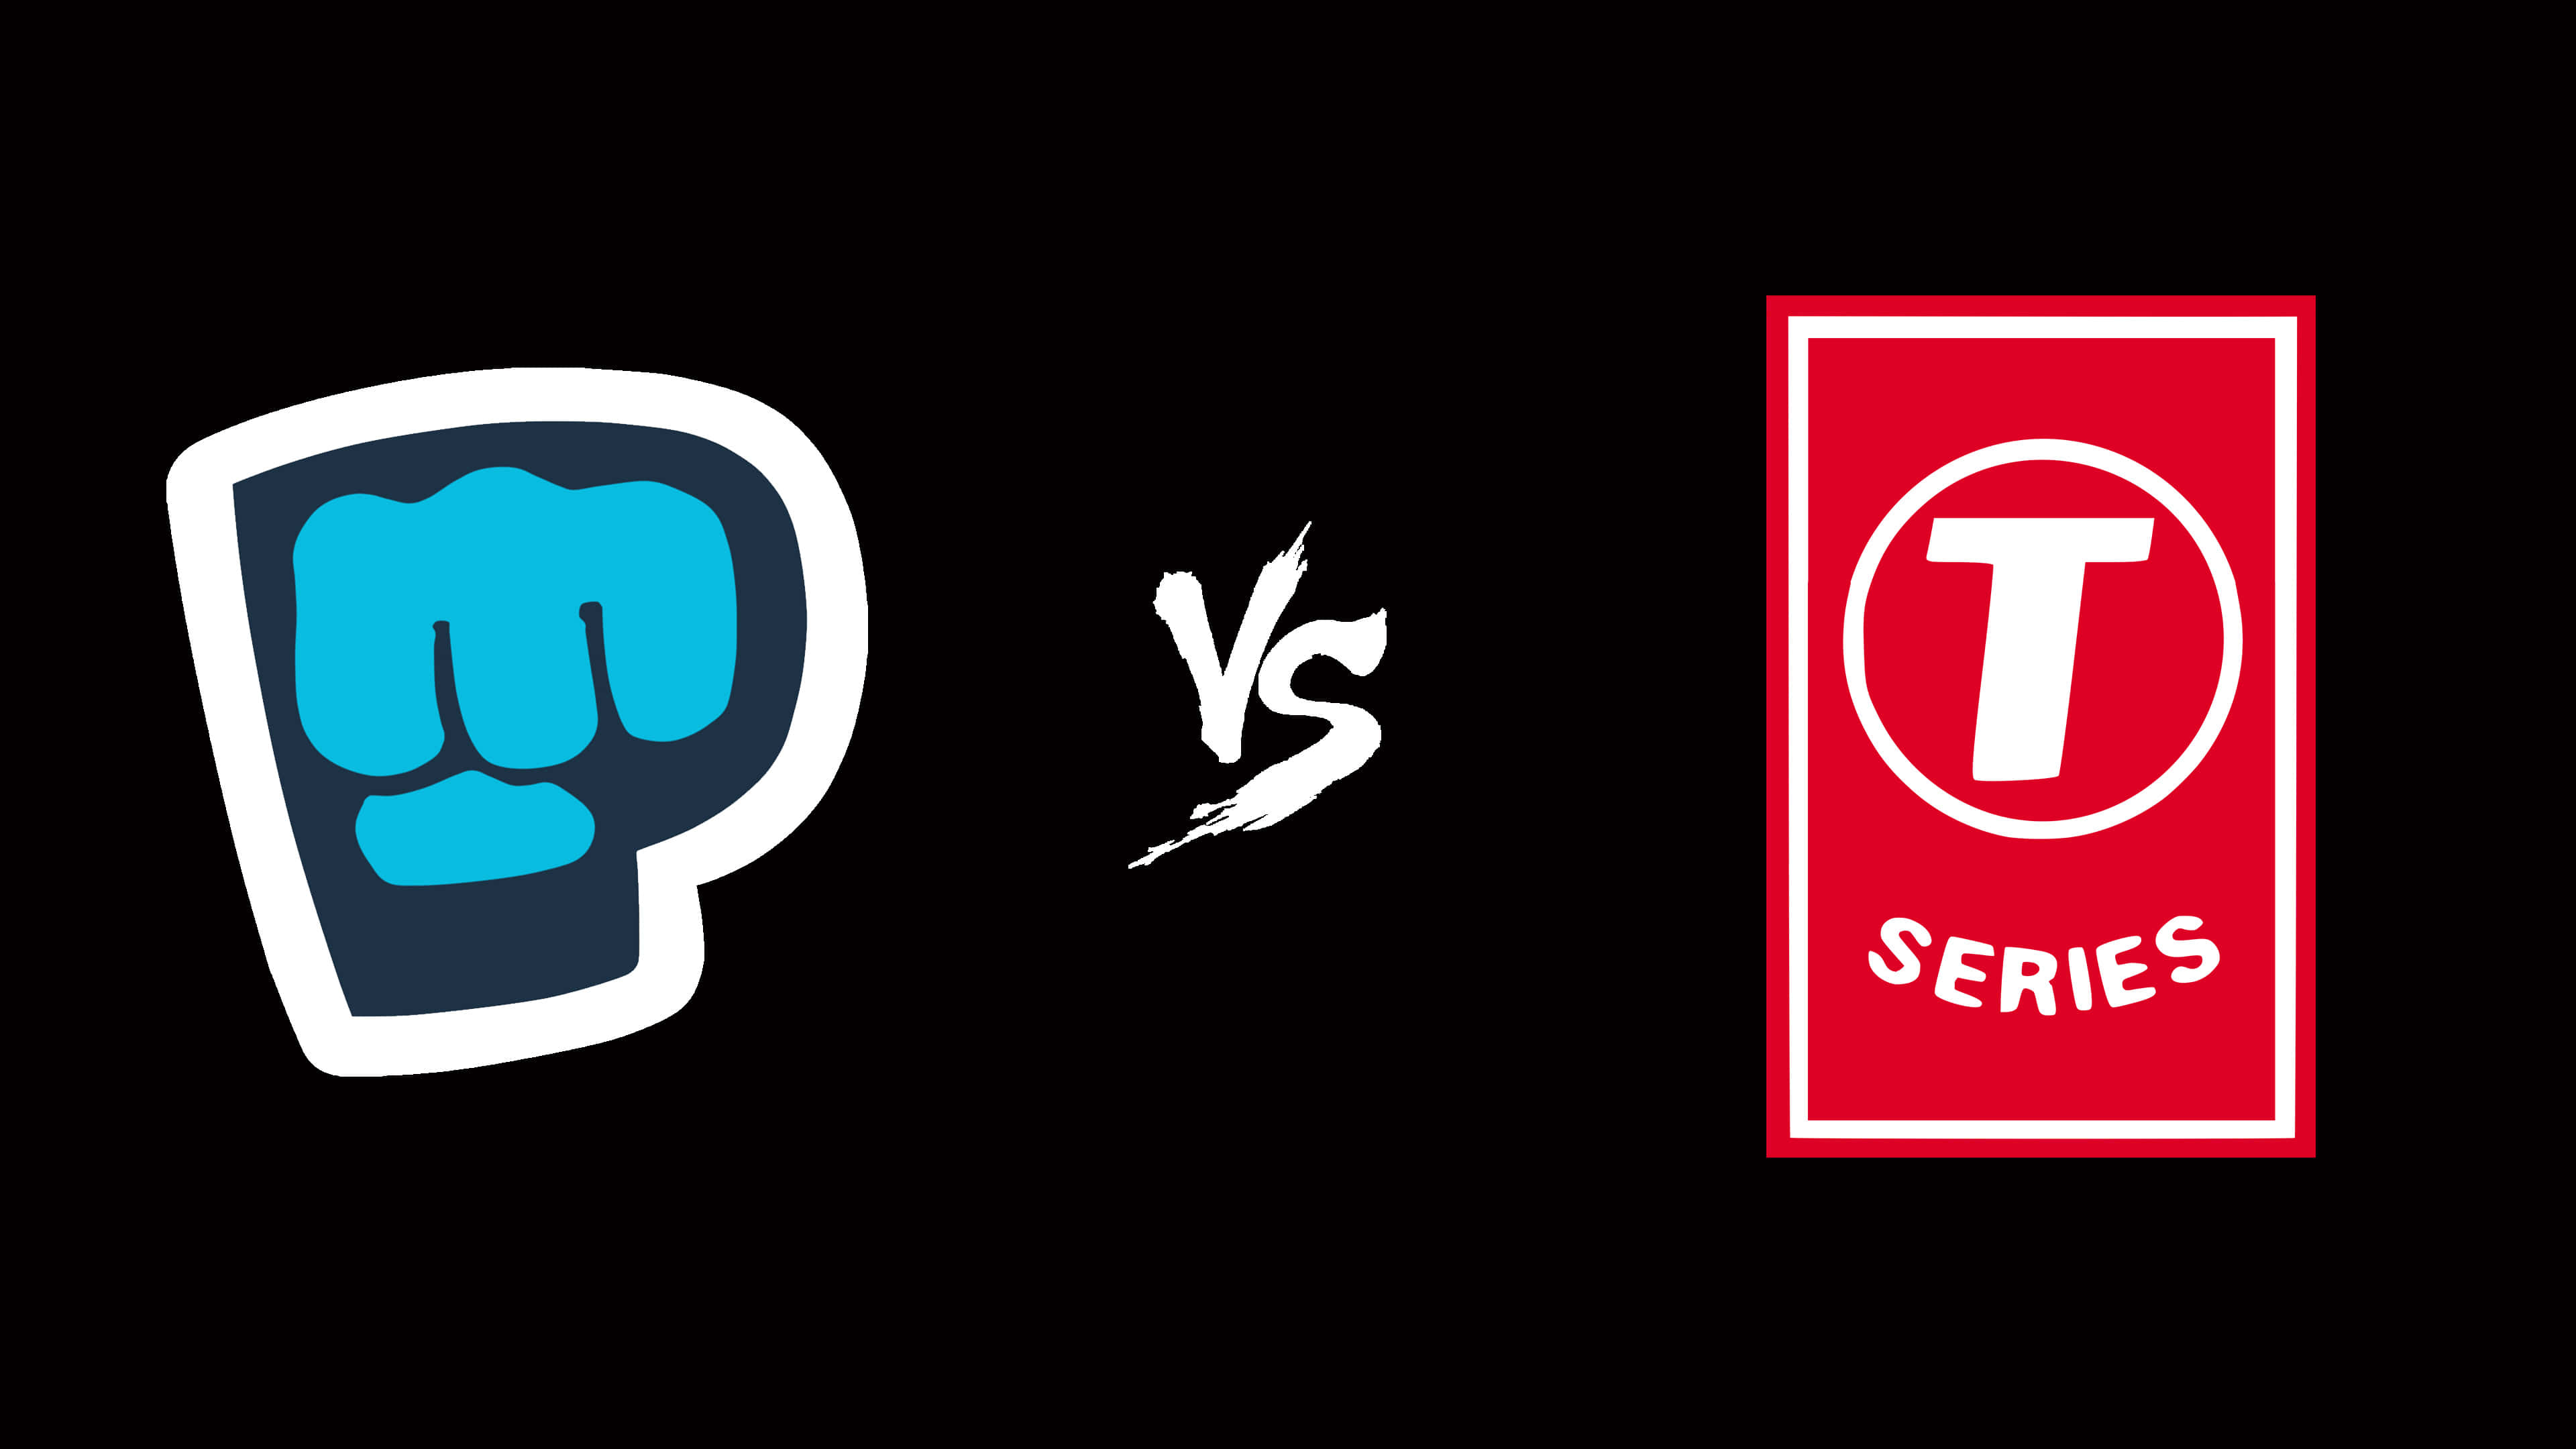 pewdiepie logo vs t-series logo uhd 4k wallpaper